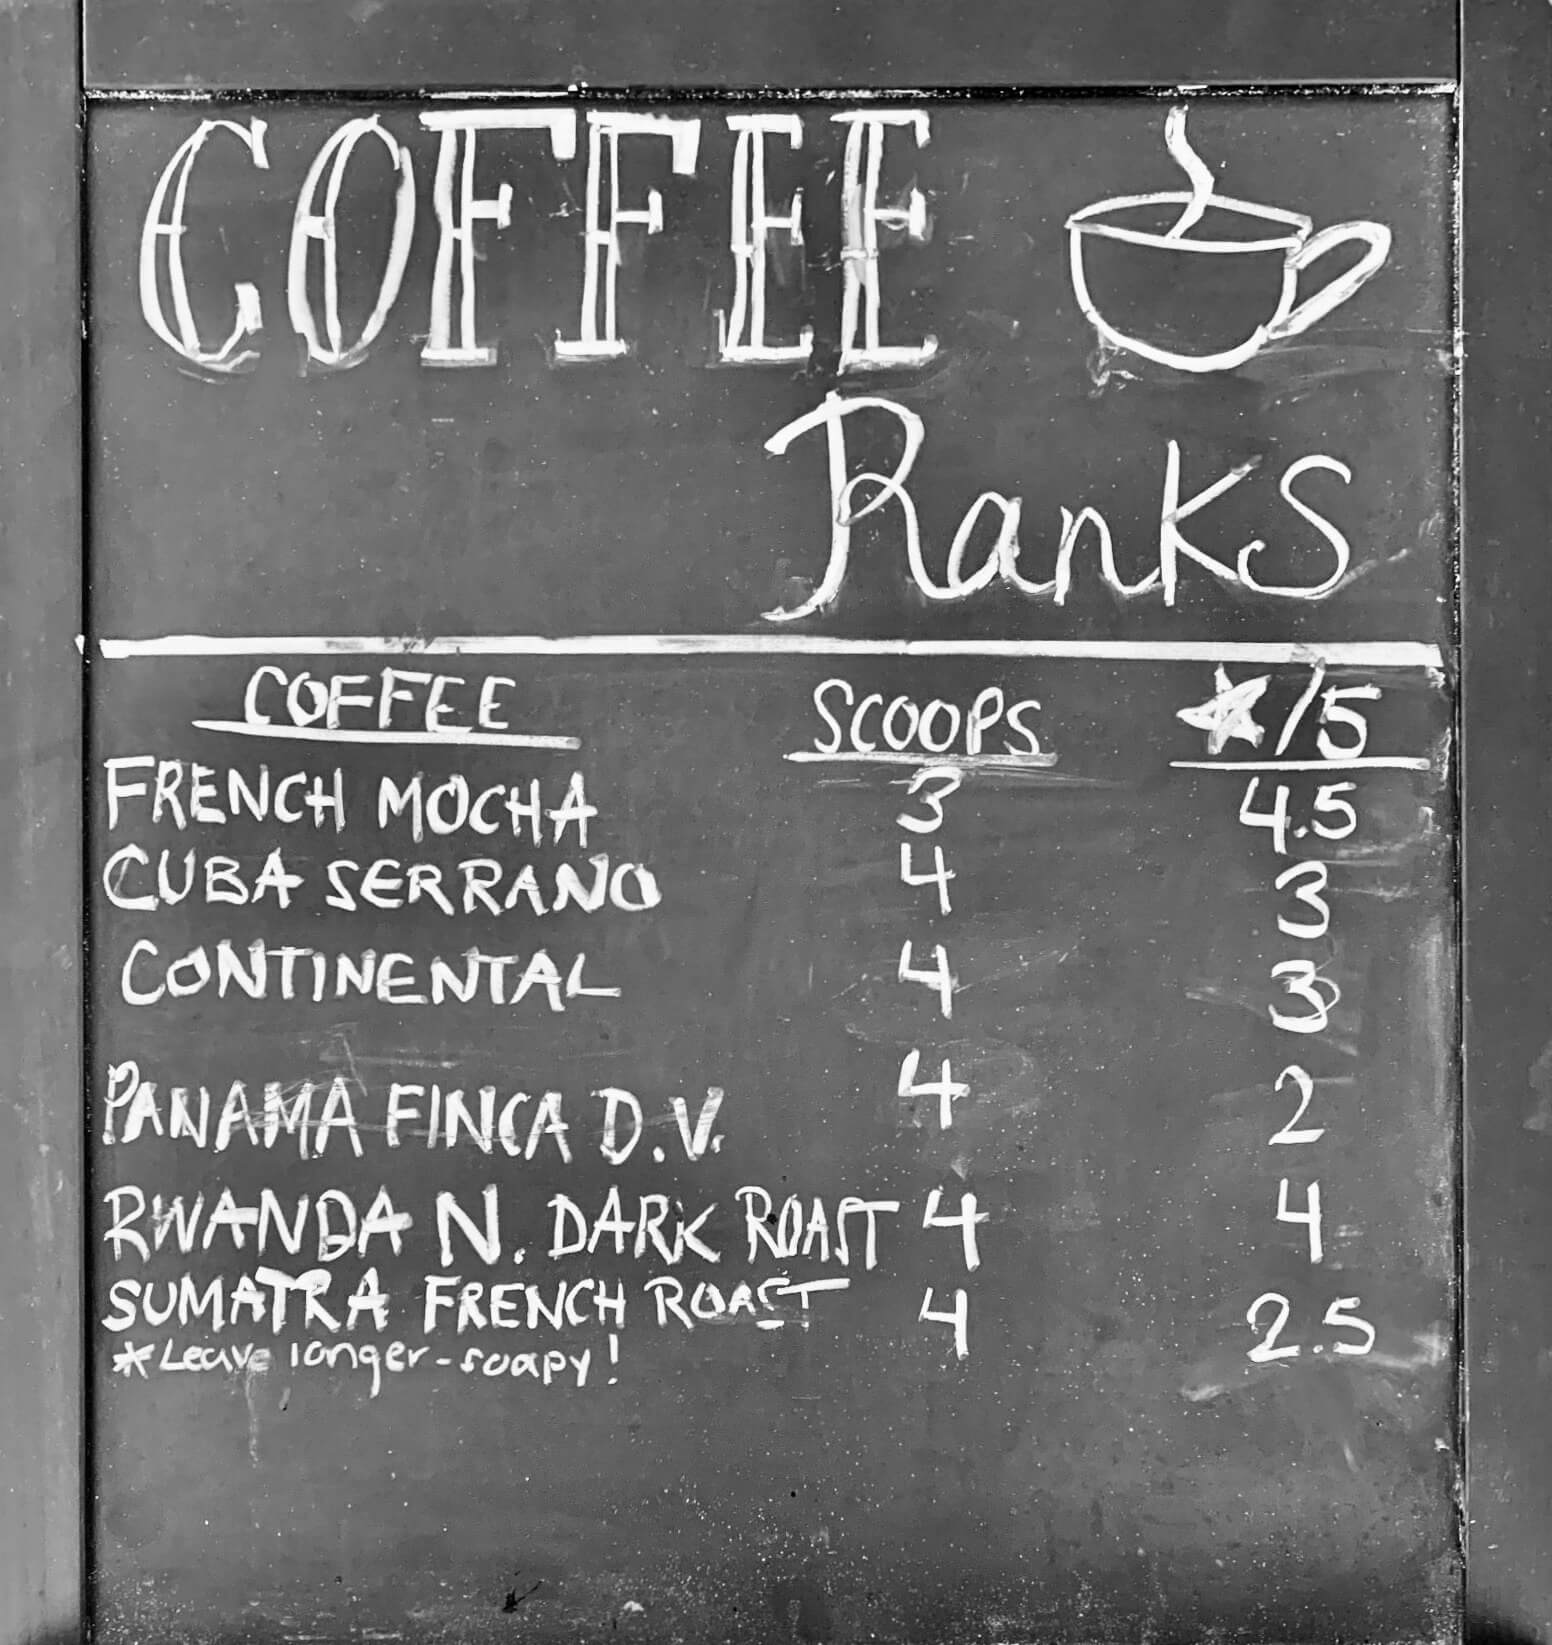 A chalkboard with ratings of local Toronto coffee roasts and beans